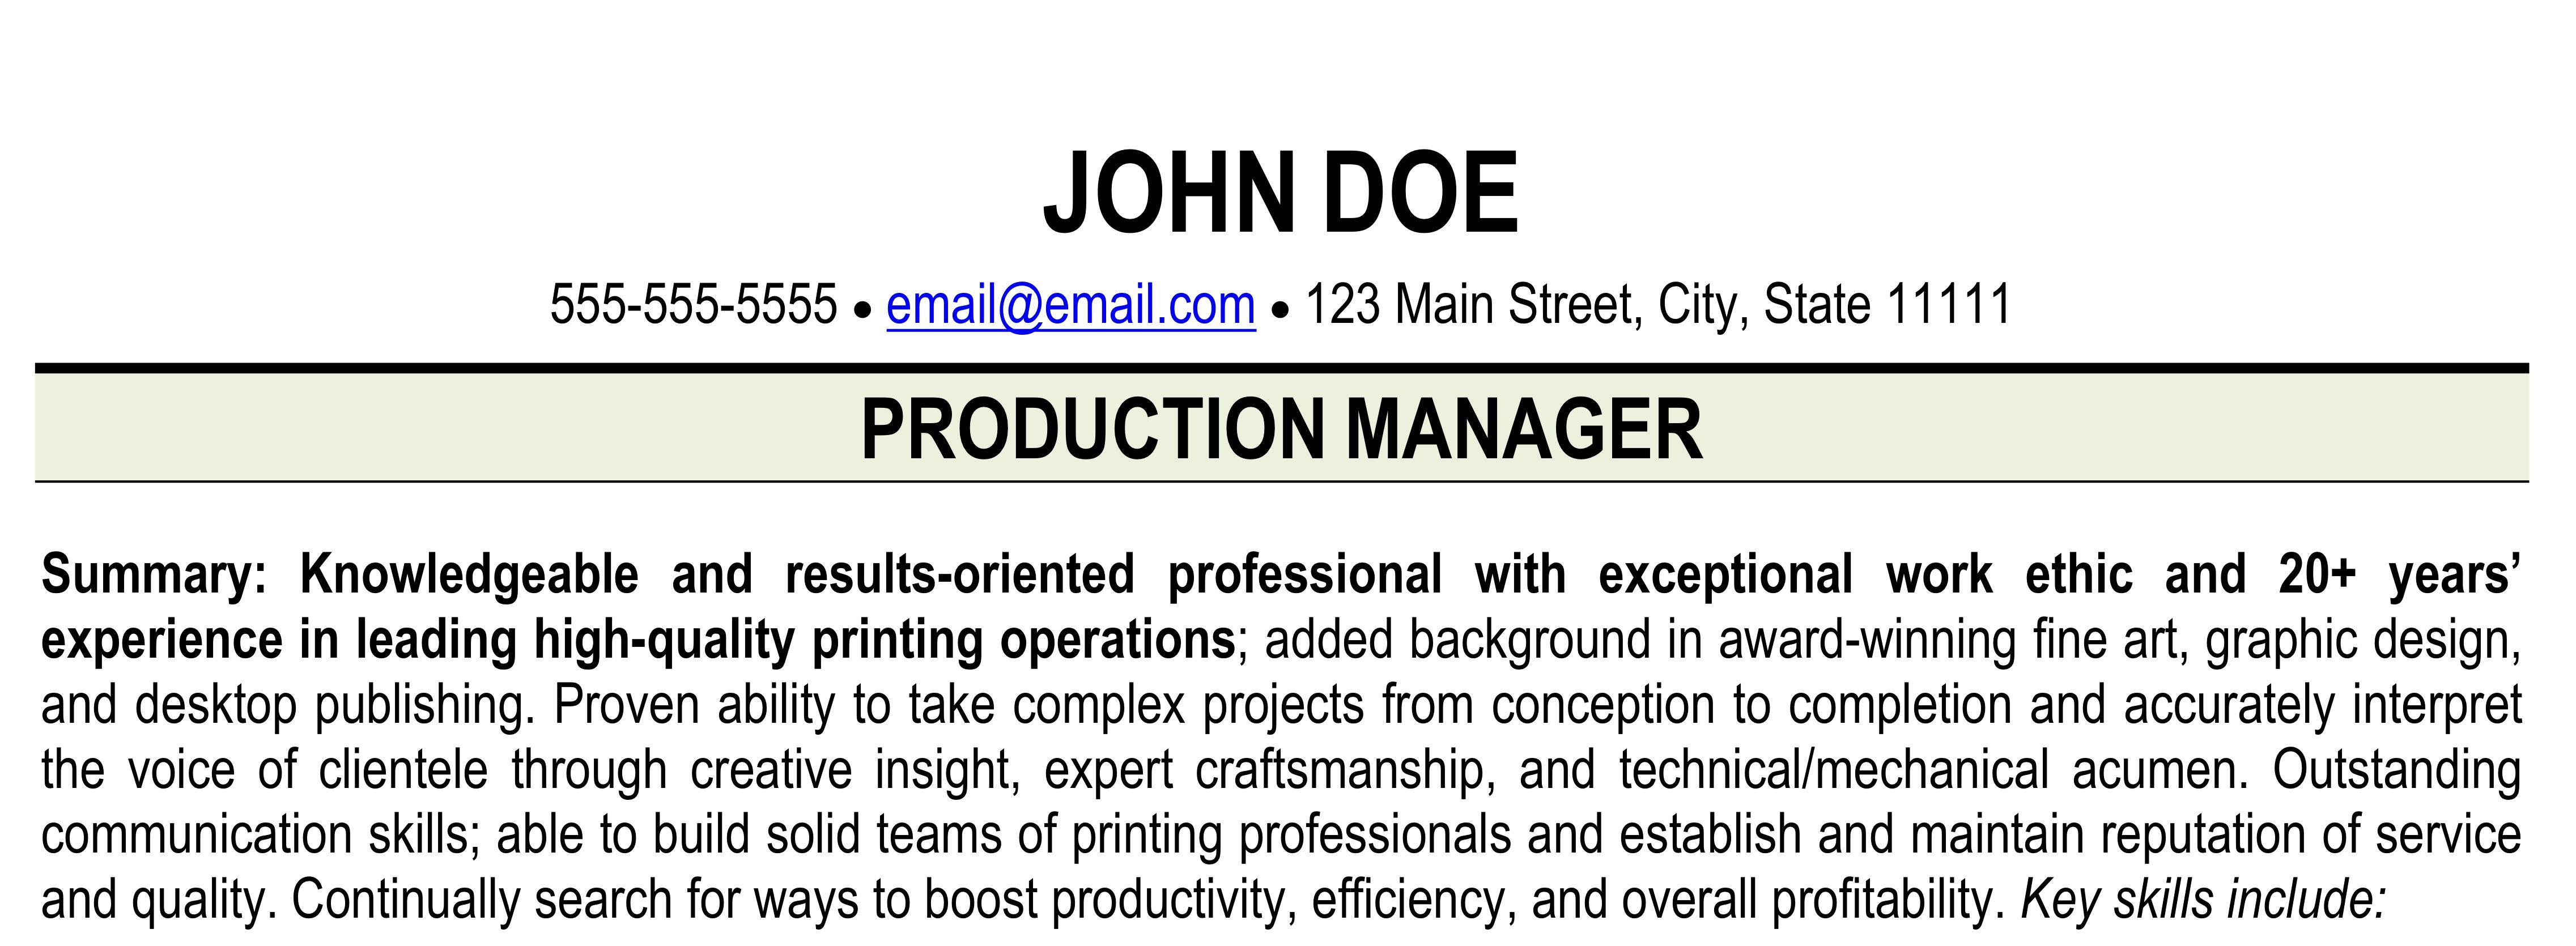 Summary Paragraph Resume Resume For Printing Industry Print Shop Resume Ihireprinting